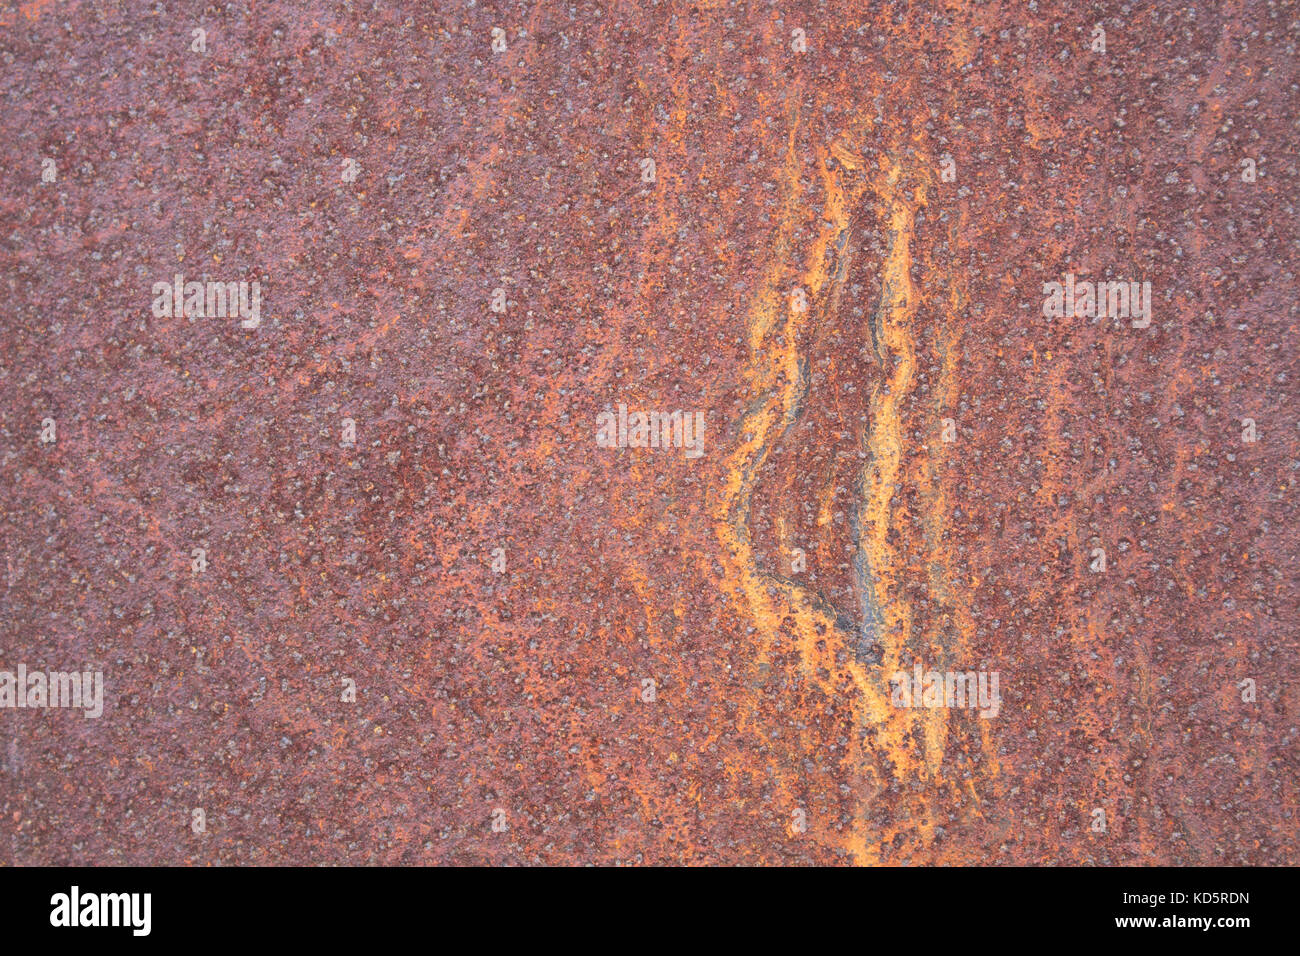 Rust on metal surfaces Caused by a reaction of metal and air humidity. - Stock Image